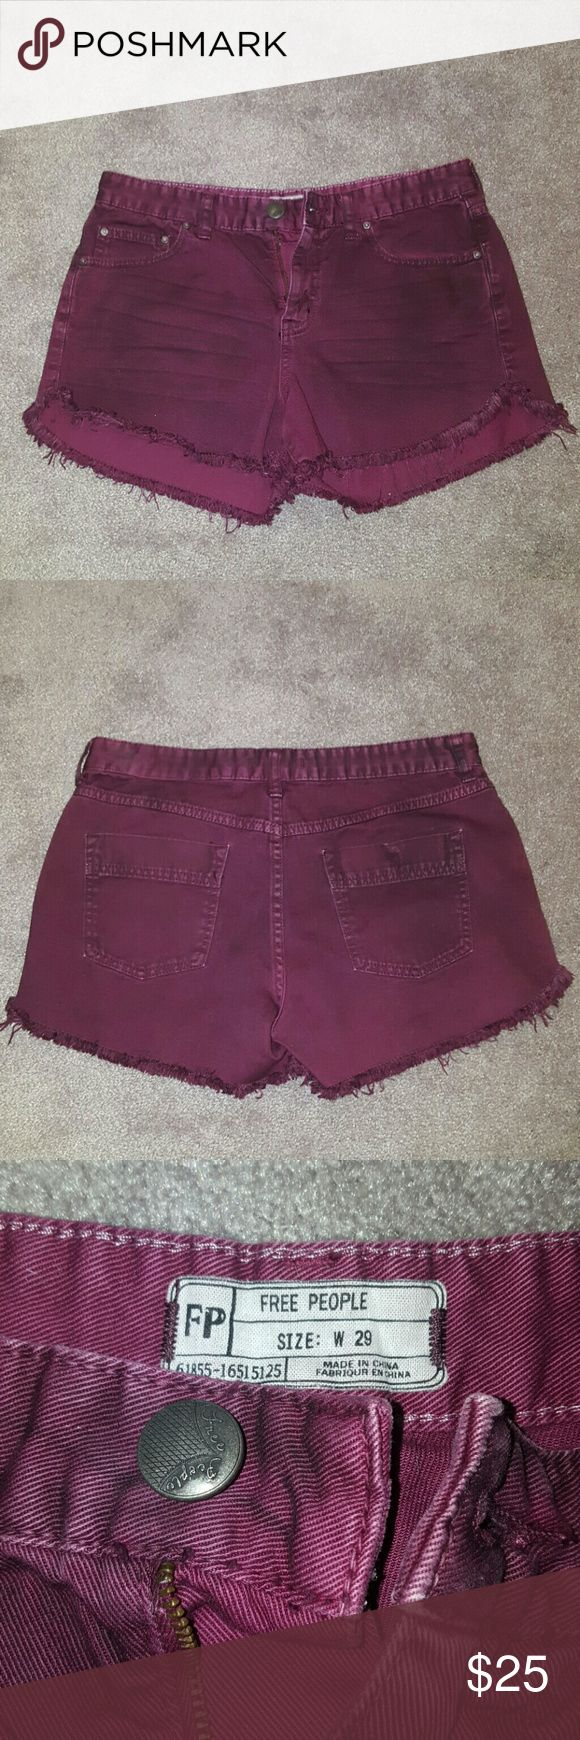 Free People Jean Shorts Gently used. Perfect condition.  Dark purple jean short. Ripped/whiskery detail. Free People Shorts Jean Shorts